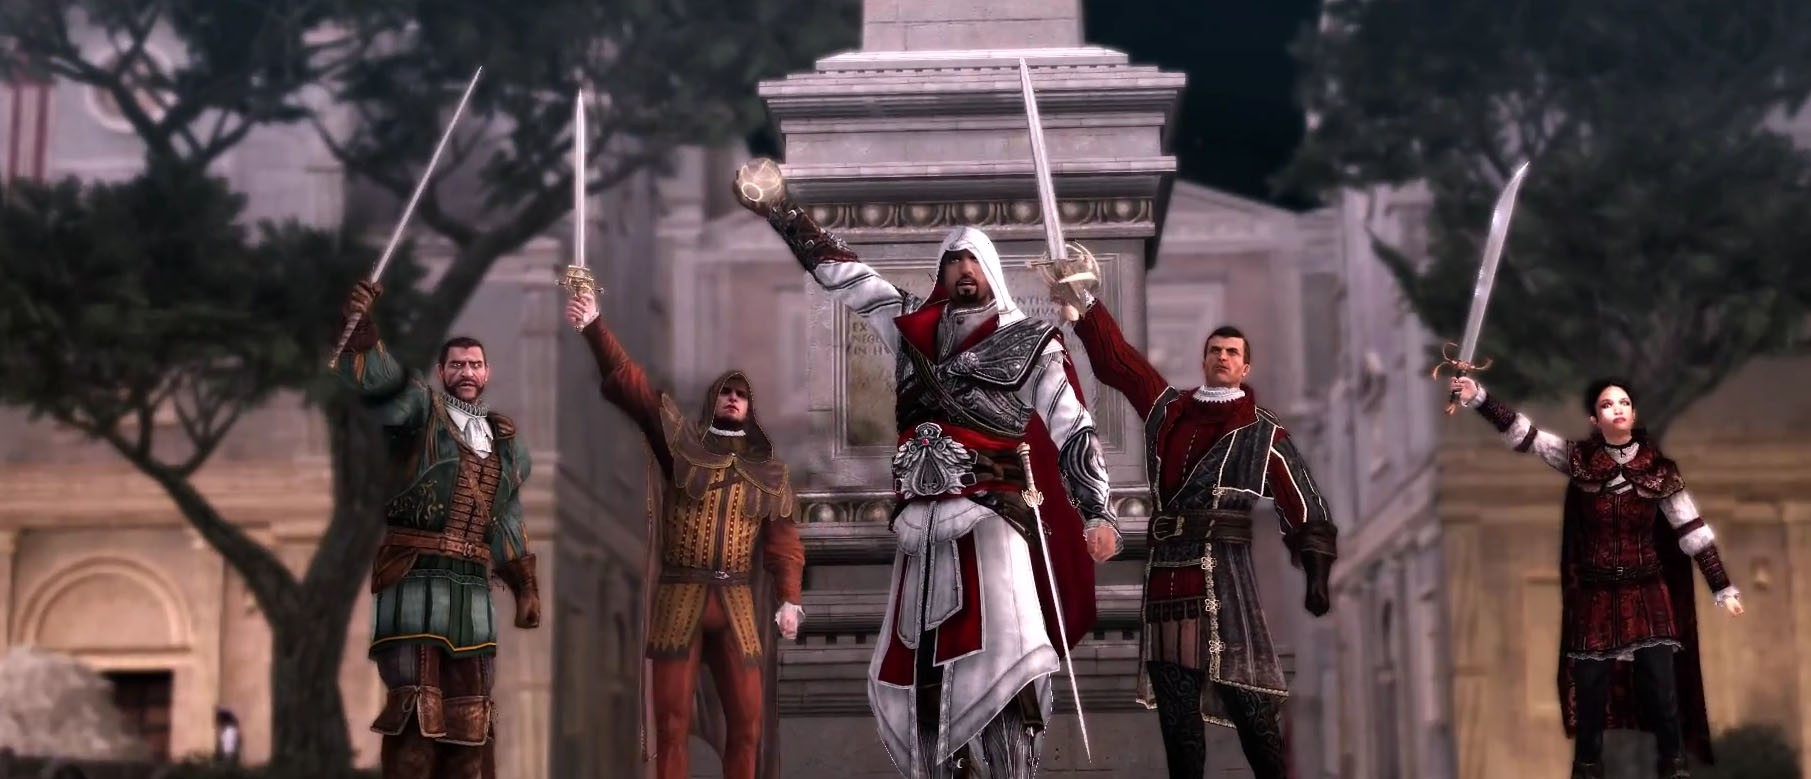 Официальный анонс Assassin's Creed: The Ezio Collection